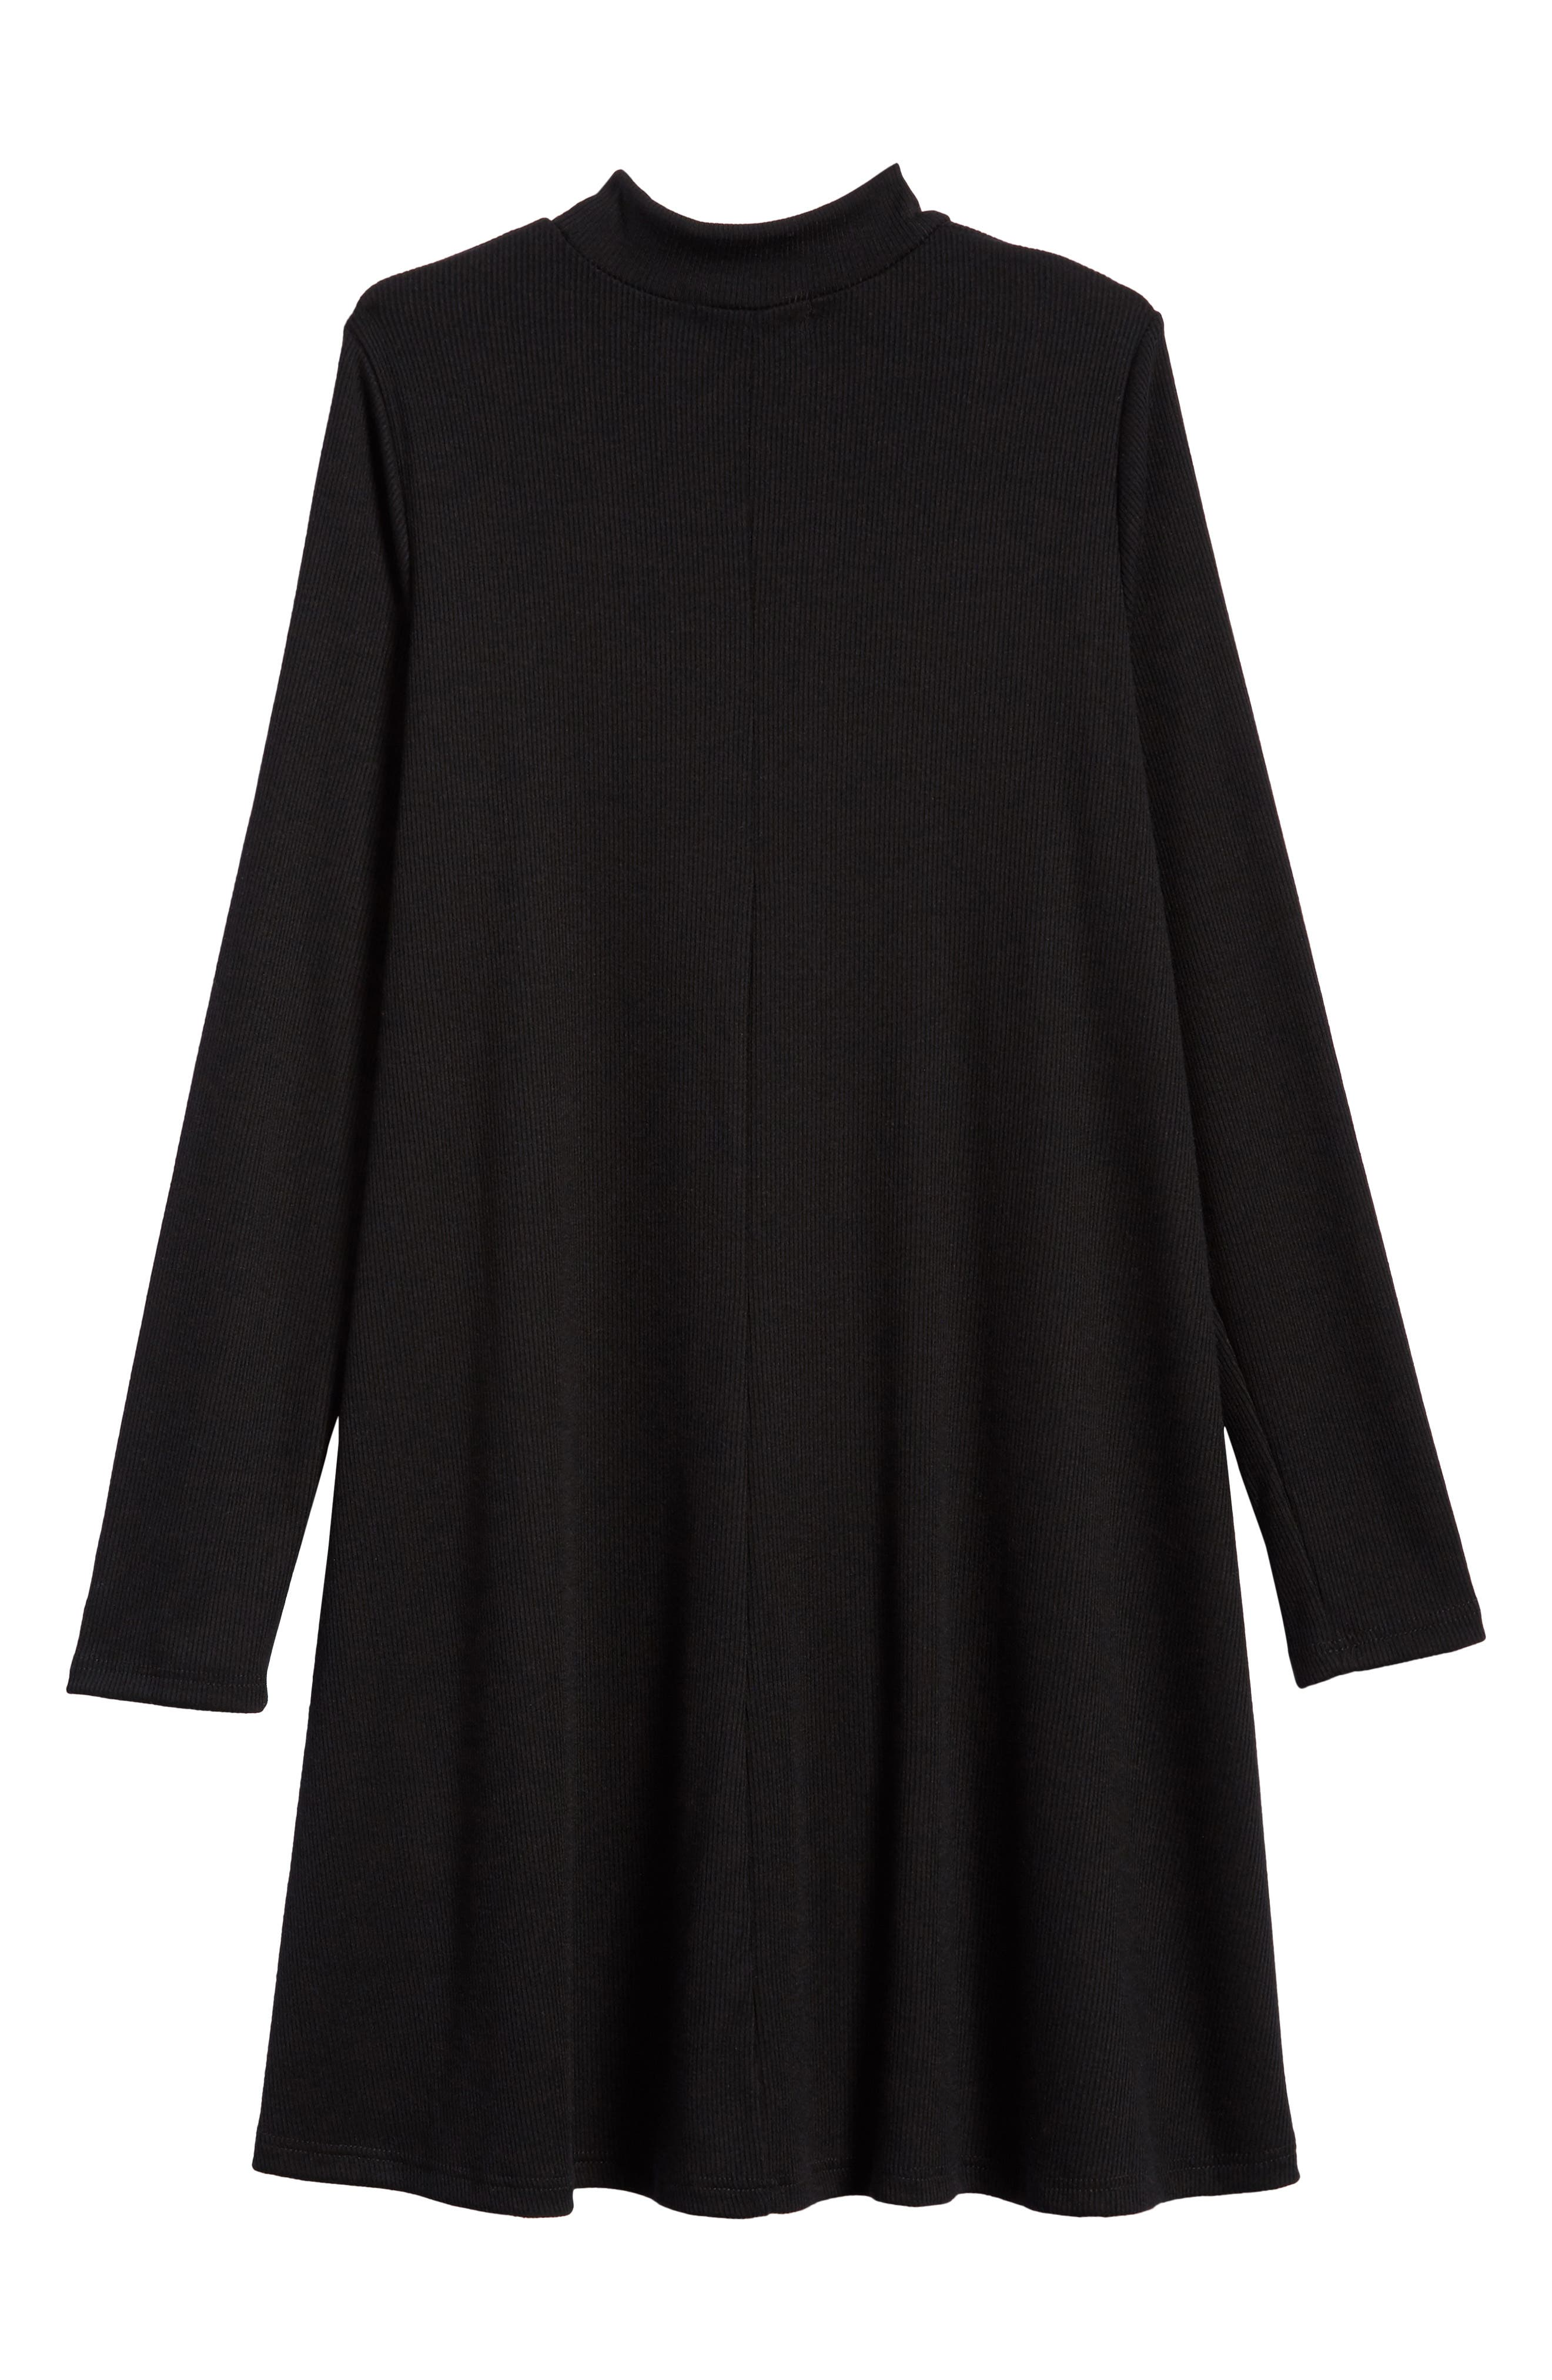 Mock Neck Knit Dress,                             Alternate thumbnail 2, color,                             001